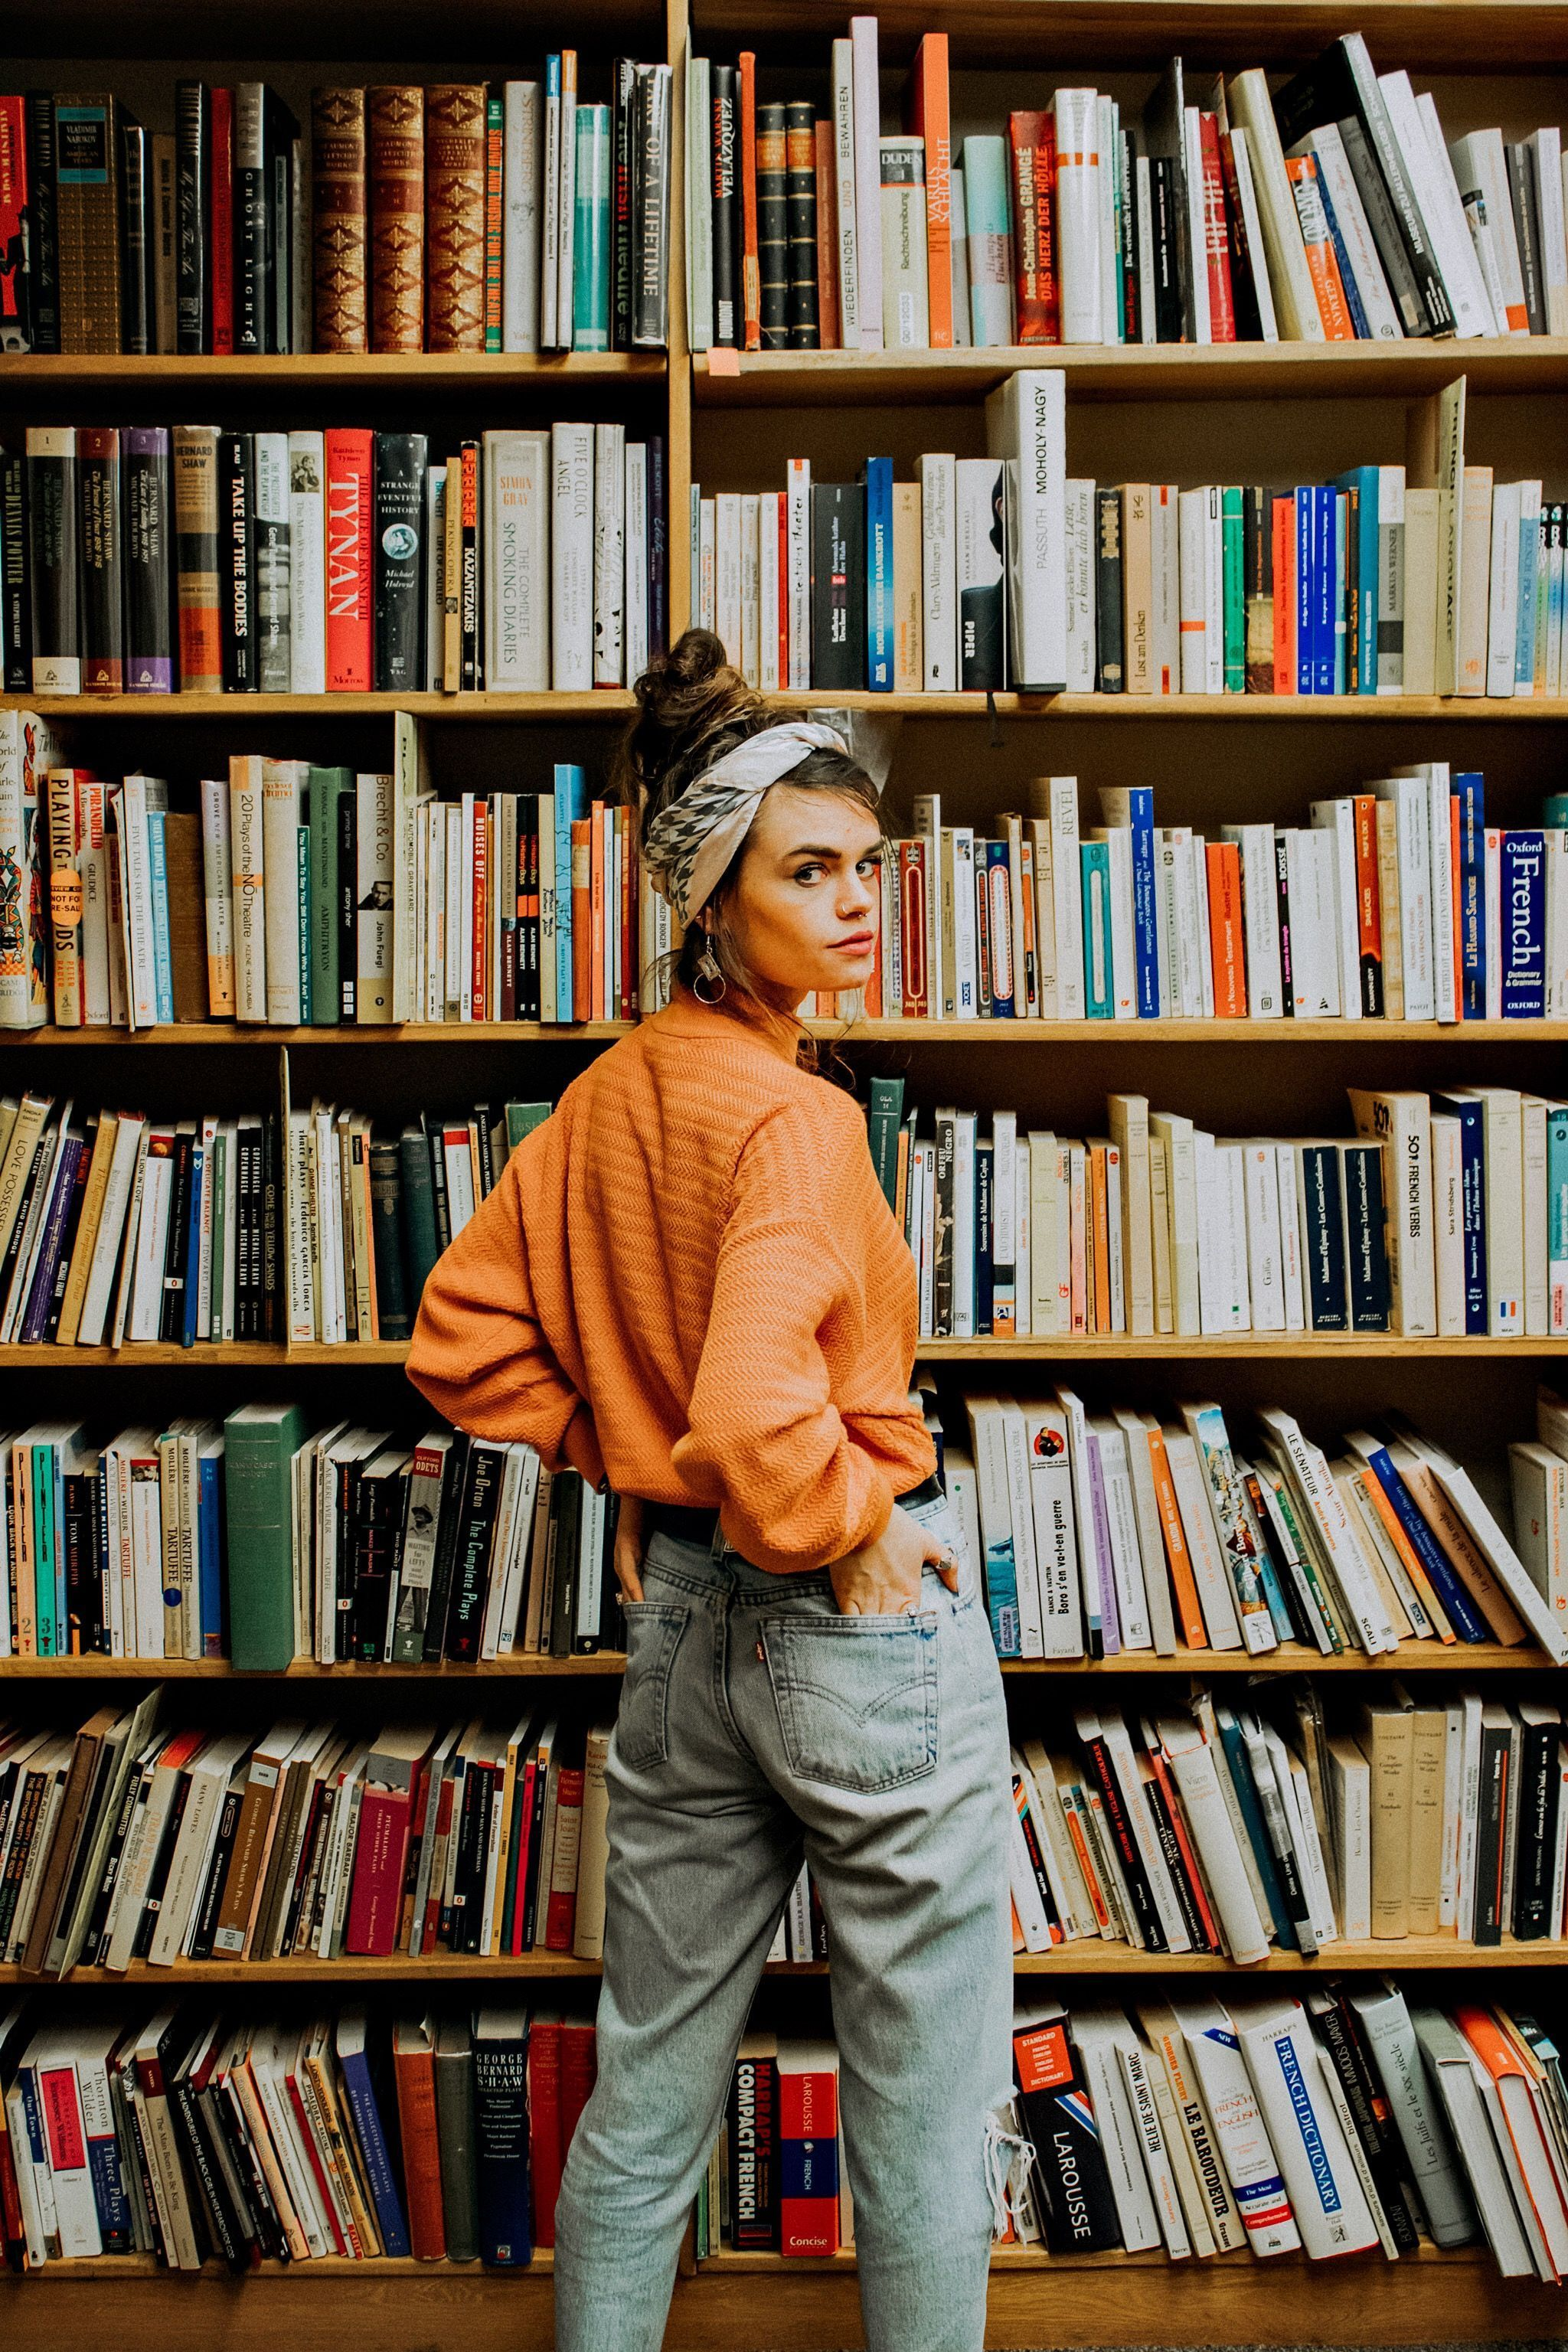 Orange fall fashion street style photoshoot inspiration 2019 library books -  Orange fall fashion street style photoshoot inspiration 2019 library books  - #apartmentideas #backyardideas #Books #disneytattoo #Fall #fashion #Inspiration #Library #makeupideas #mandalatattoo #Orange #Photoshoot #photoshootideas #Street #Style #sunflowertattoo #tattoofrauen